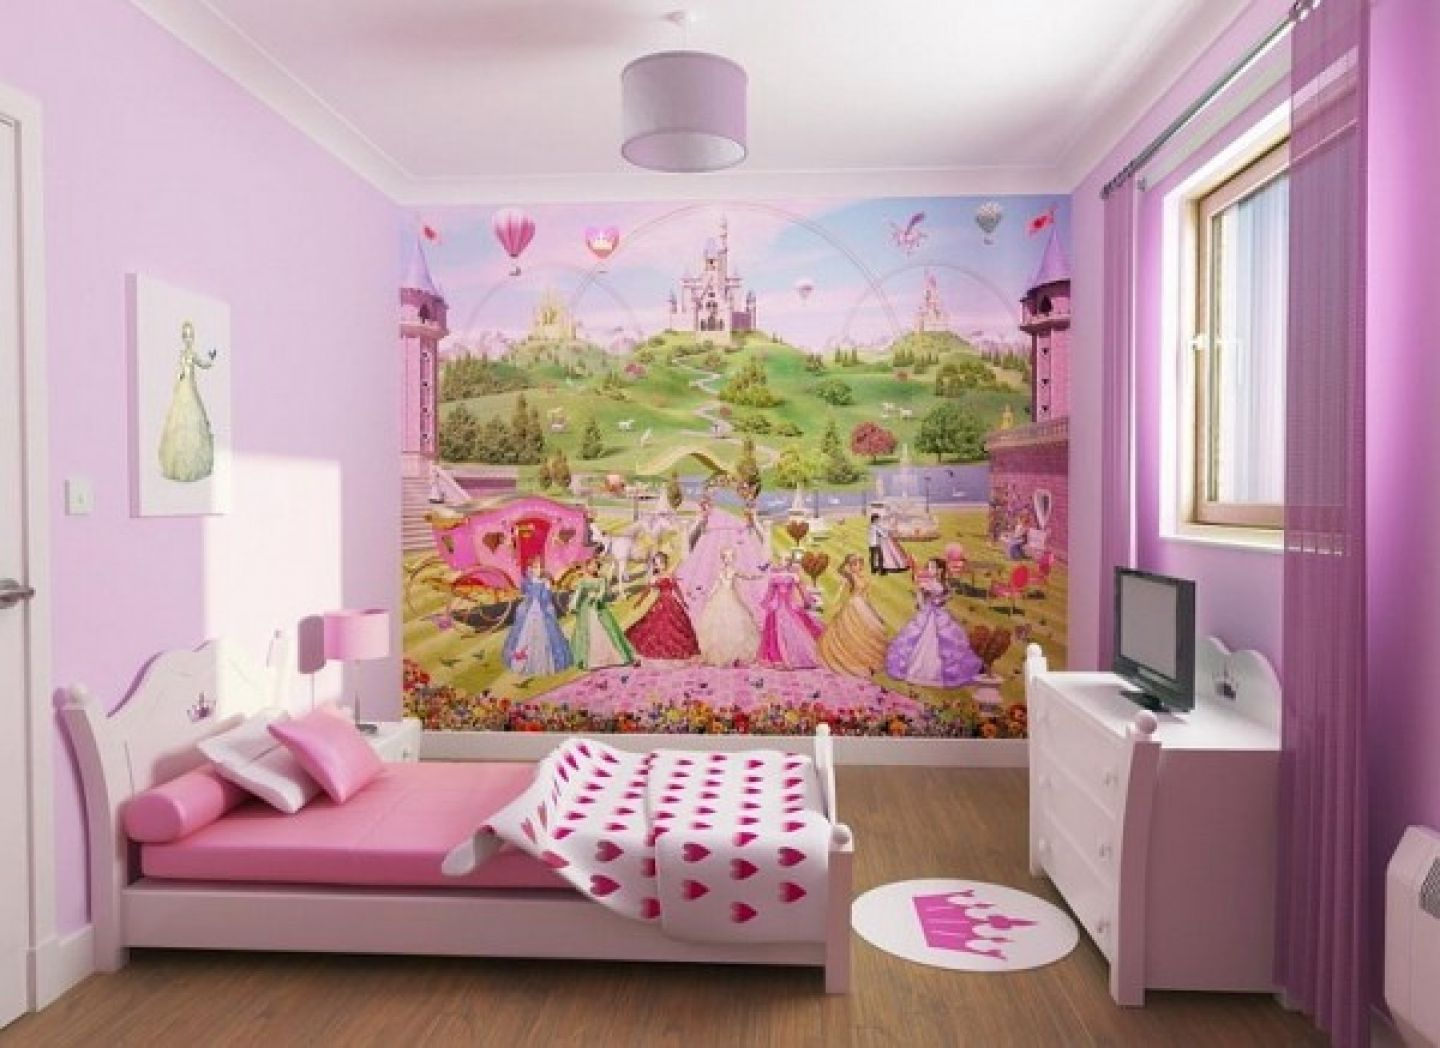 girls bedroom stylewall murals bedroom bedroom decor and girls - Decoration For Girl Bedroom